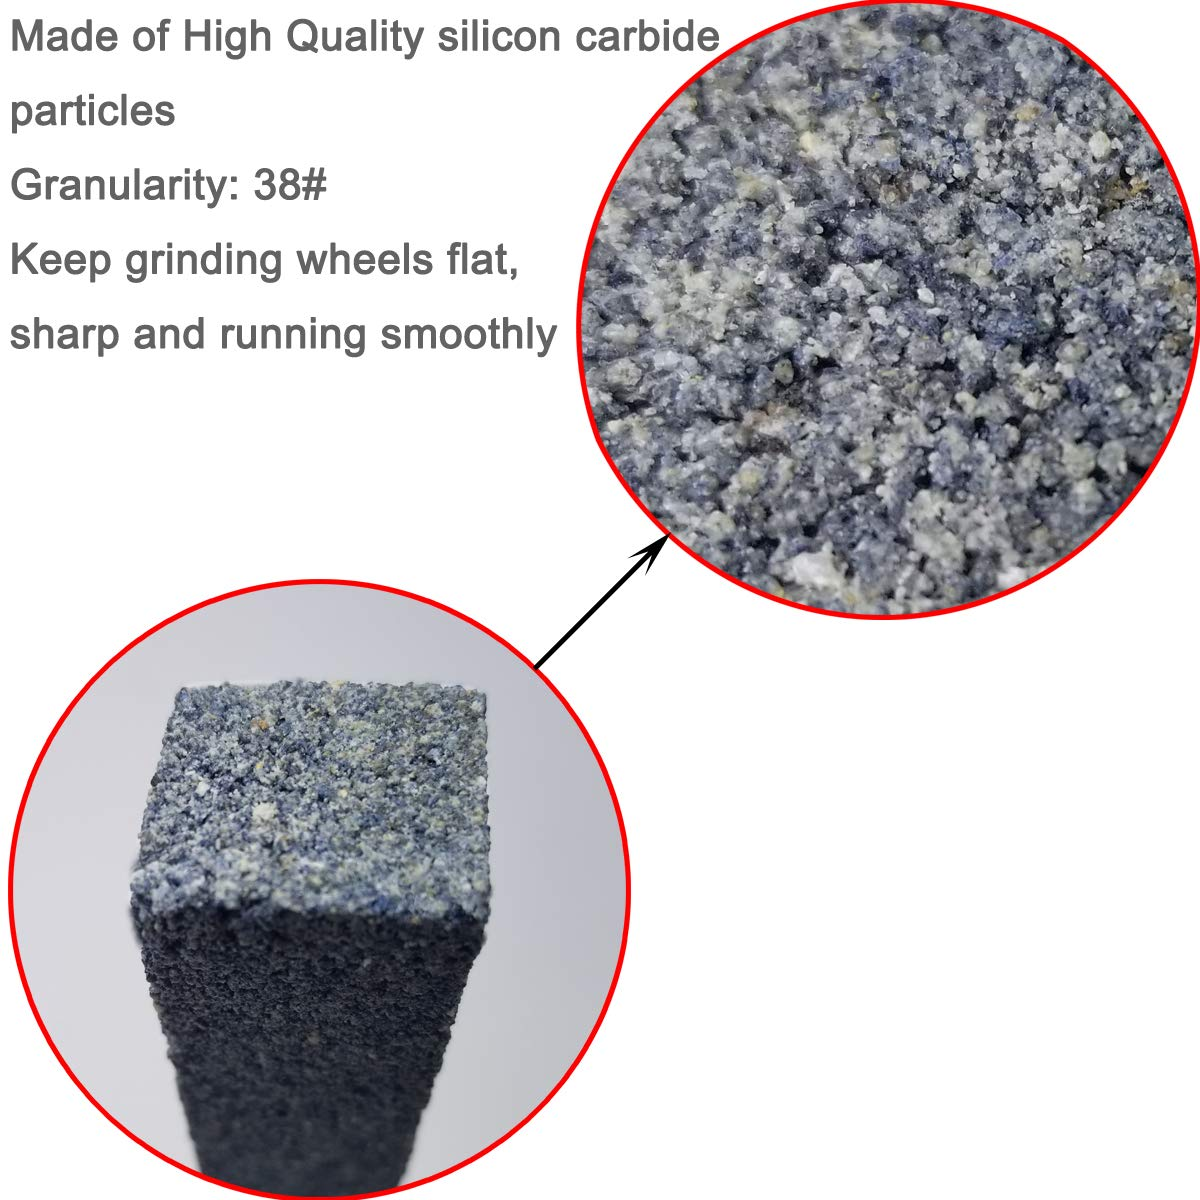 Great for Cleaning M-jump Bench Grinder 8x1x1inch Dressing Stick Made of Medium Grit Sharp Reshaping Grinding Wheels to Max Grinding Performance Extra Durable Silicon Carbide Abrasive Opening